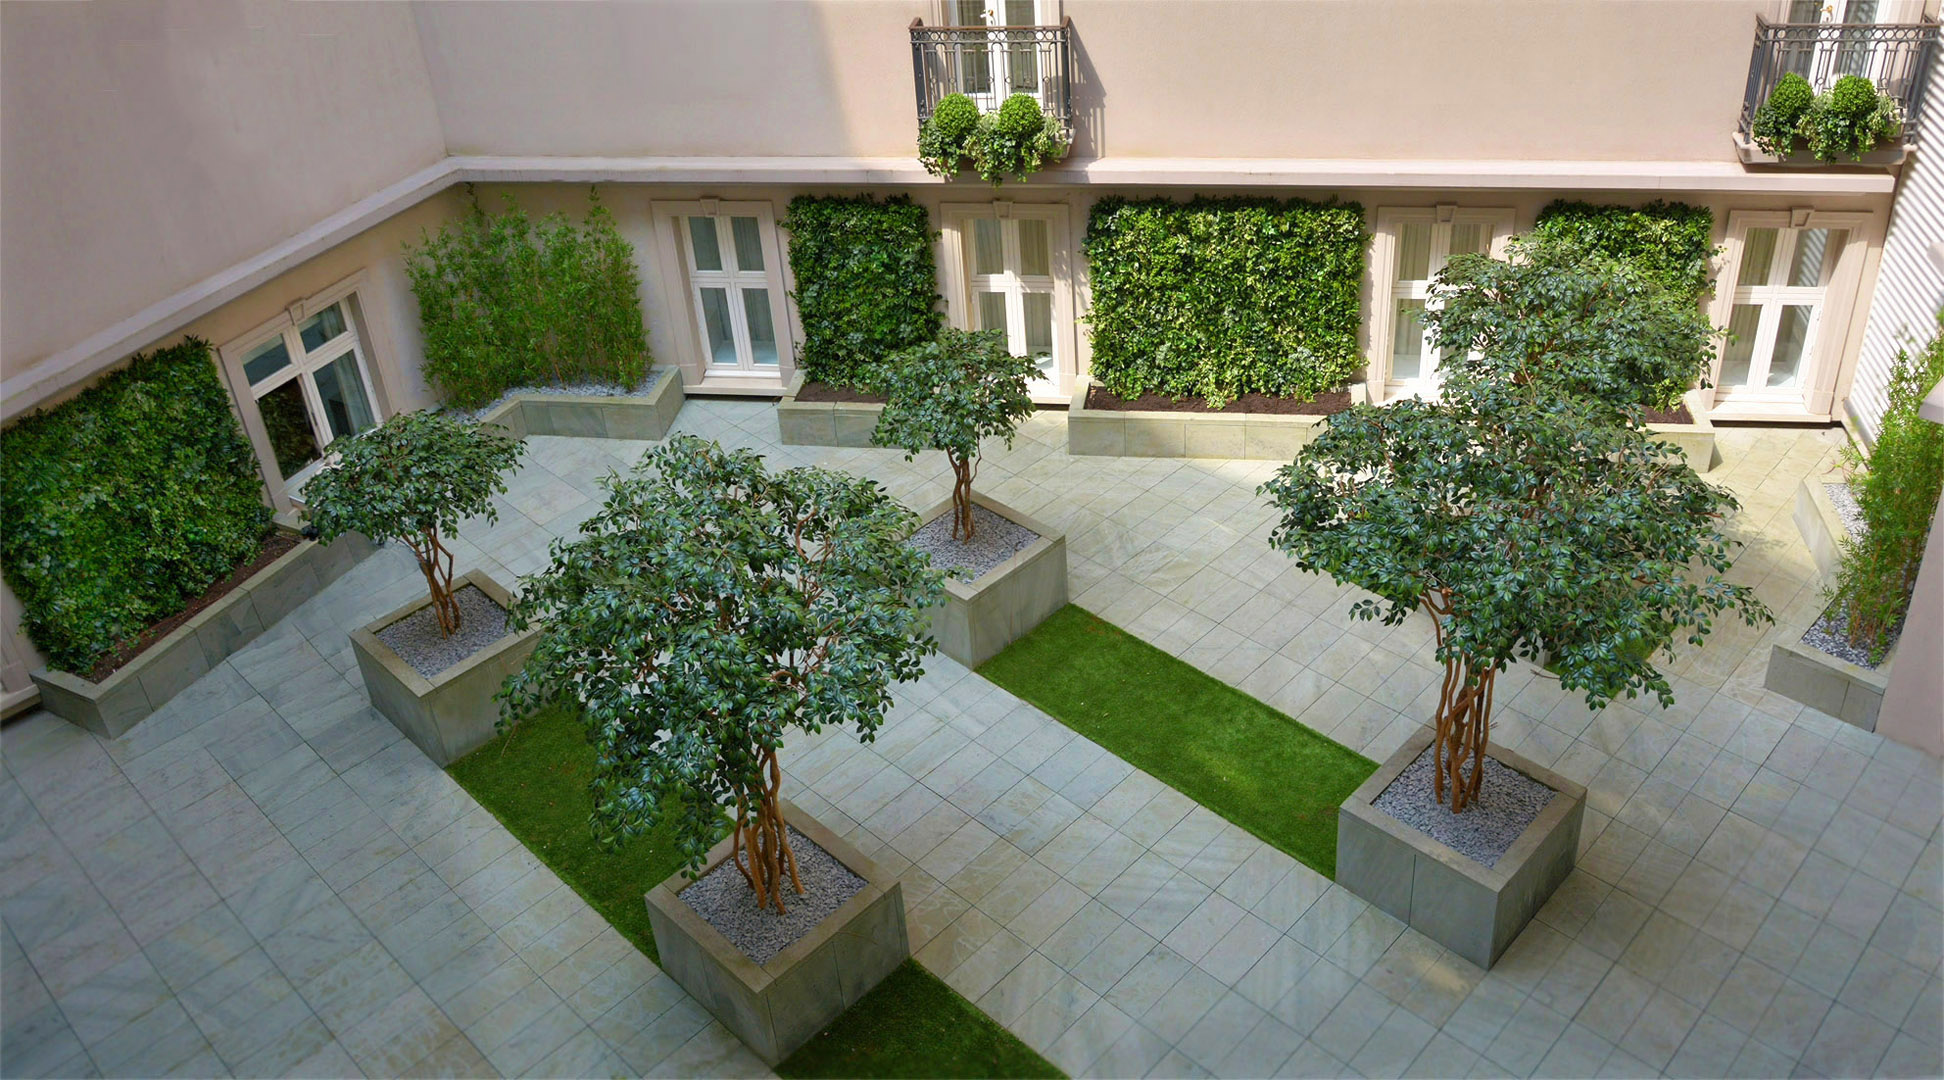 410 fake landscapes corinthia hotel courtyard UV camellia trees, bamboo, living walls and window boxes